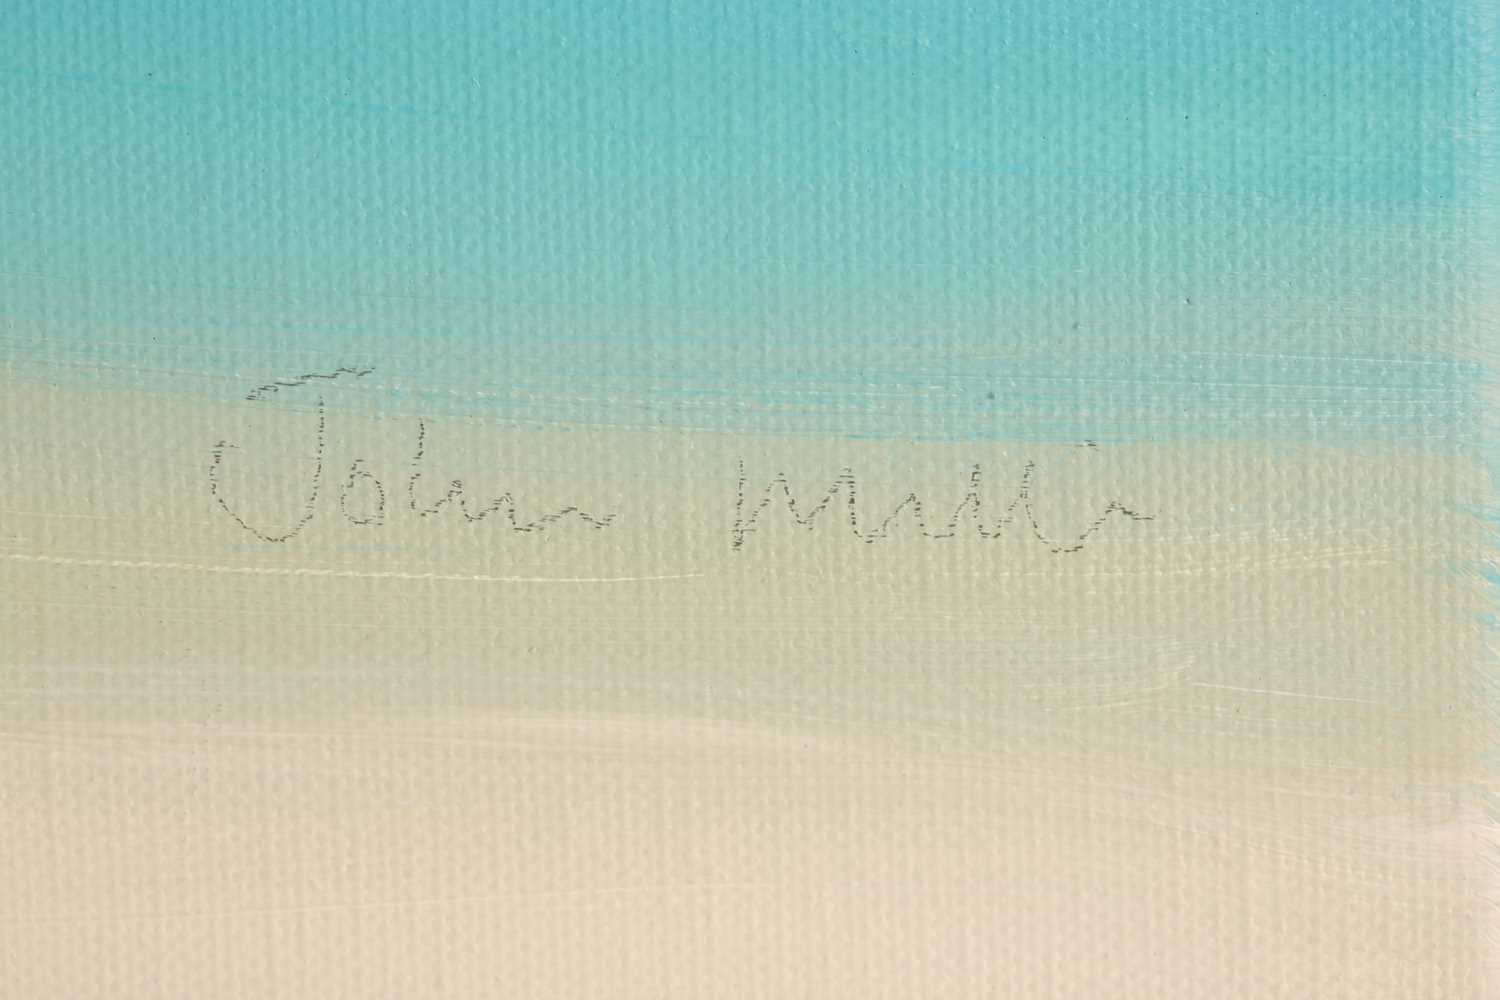 John Miller (1931-2002), Quiet Beach, oil on canvas, signed, titled and inscribed verso, 75.5cm x - Image 3 of 6